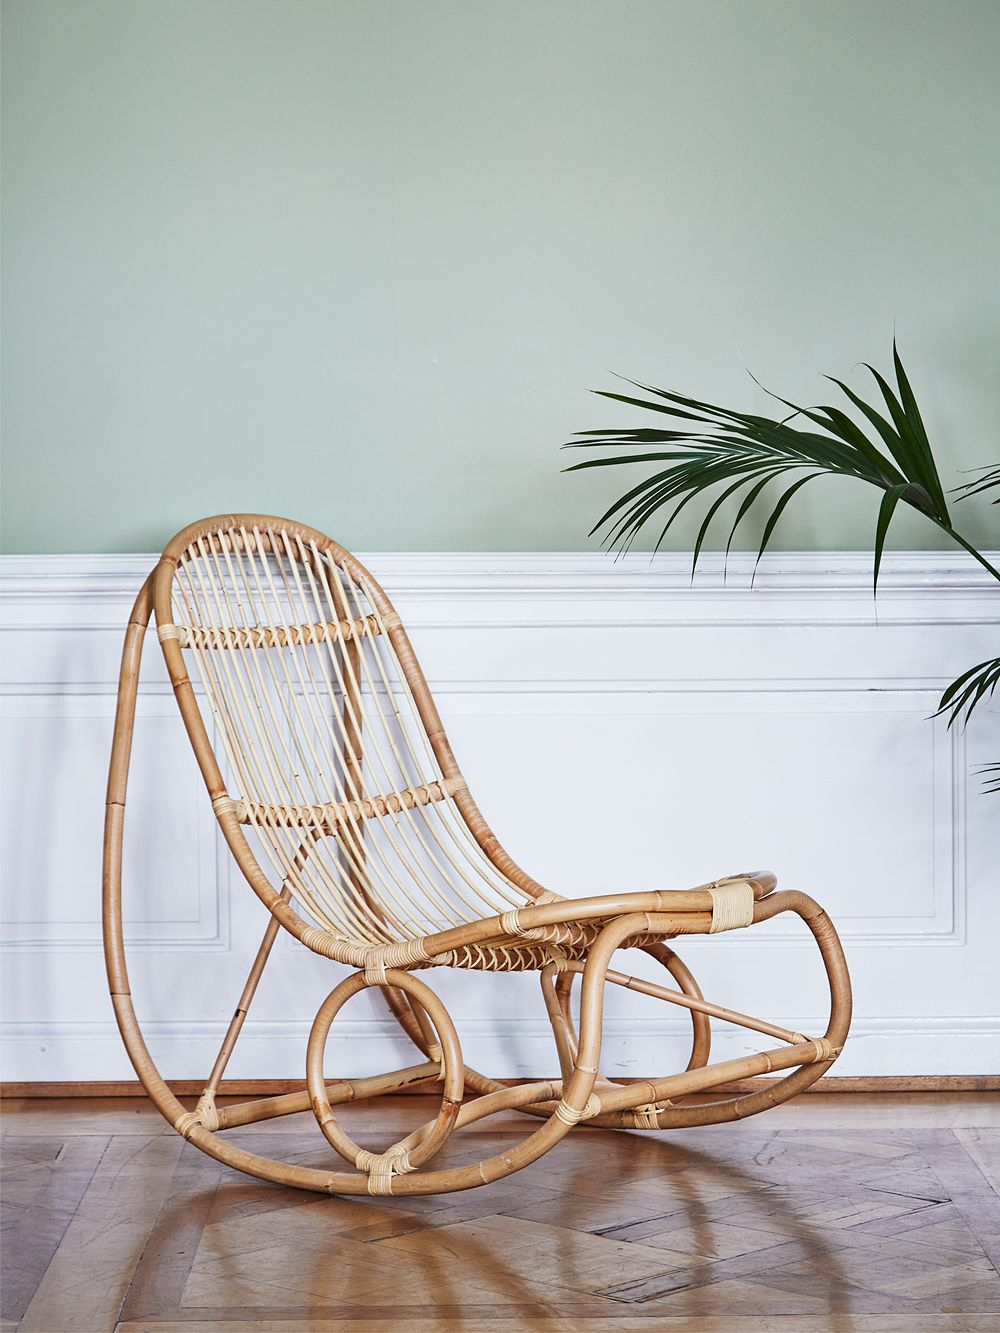 Sika-Design Nanny rocking chair